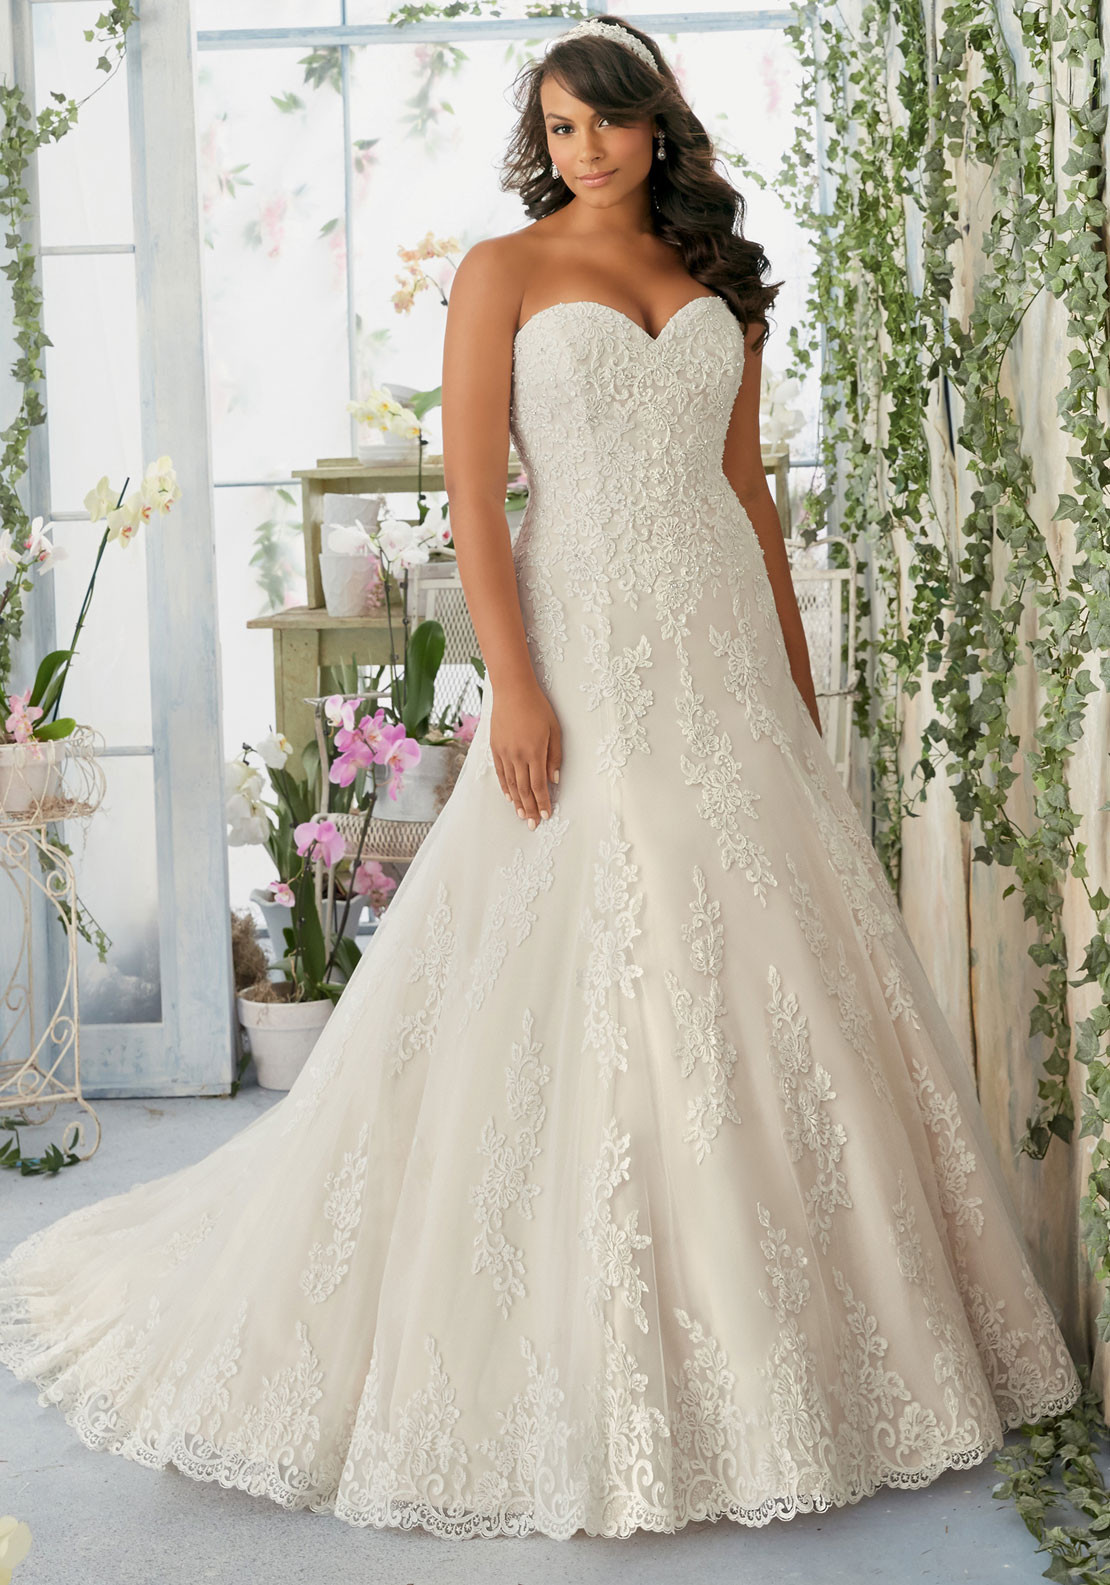 Julietta by Mori Lee 3196 Wedding Dress